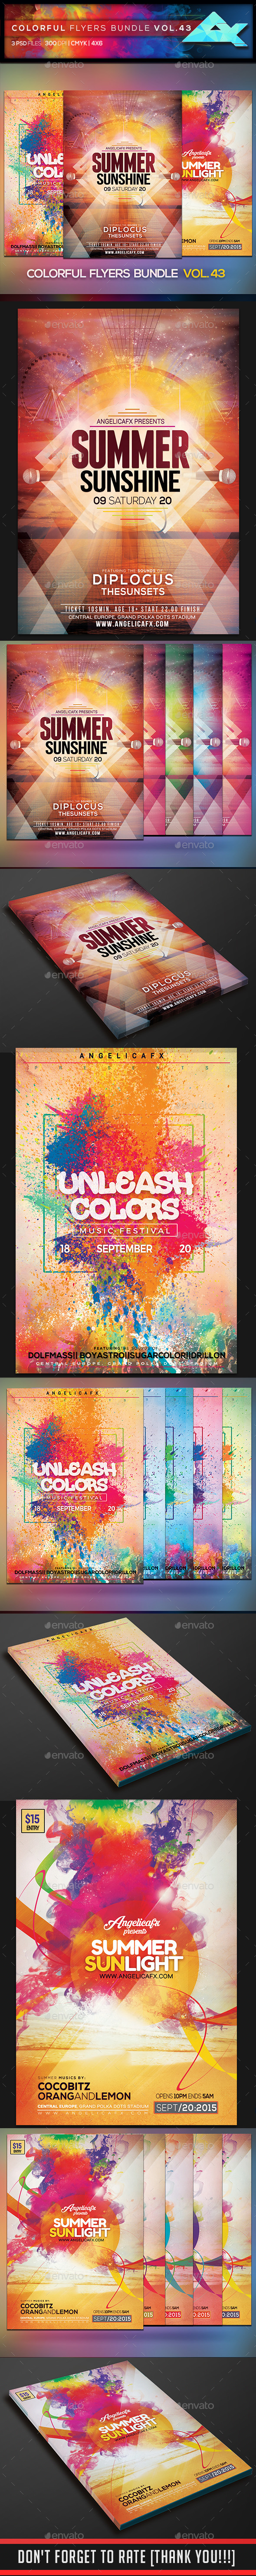 Colorful Flyers Bundle Vol. 43 - Flyers Print Templates